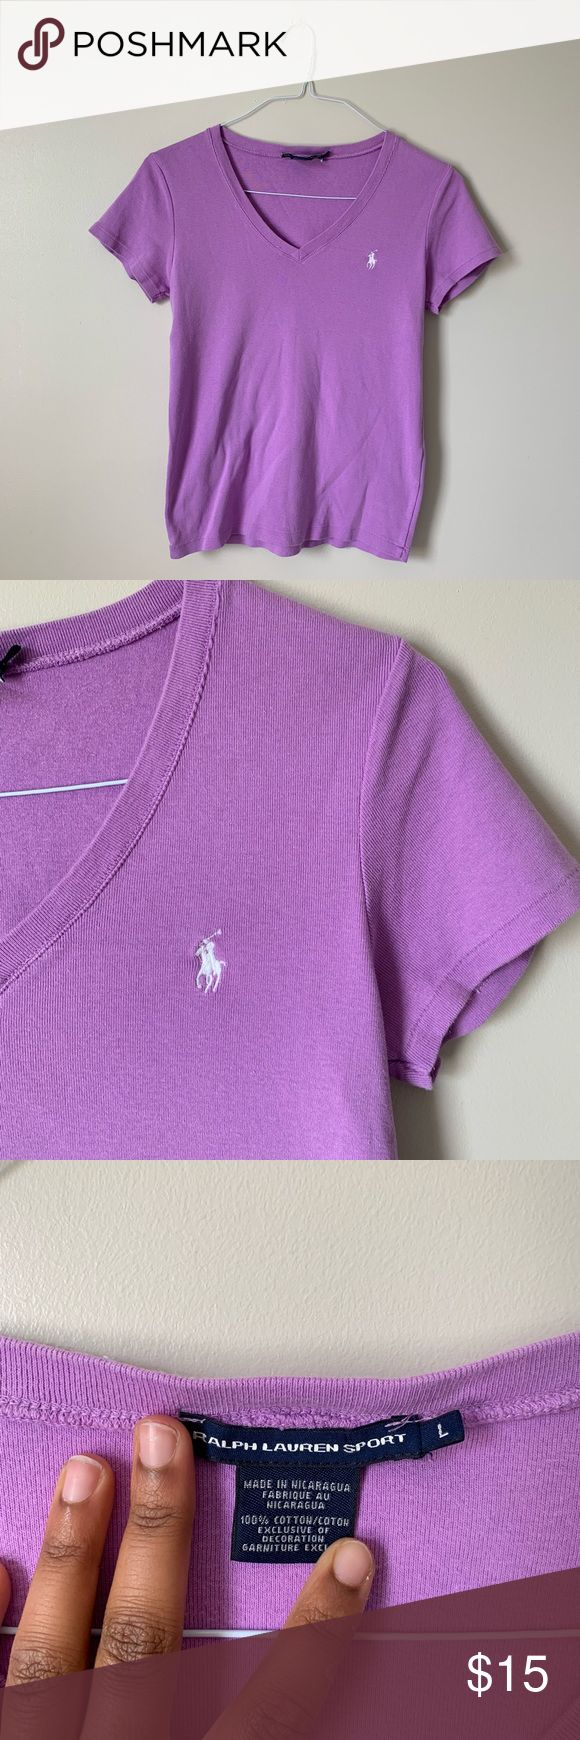 Basic Purple Ralph Lauren Graphic Tee size- L follow us on instagram @shopmonowi for updates     tags- cute, aesthetic, vintage, thrifted, y2k, babygi...